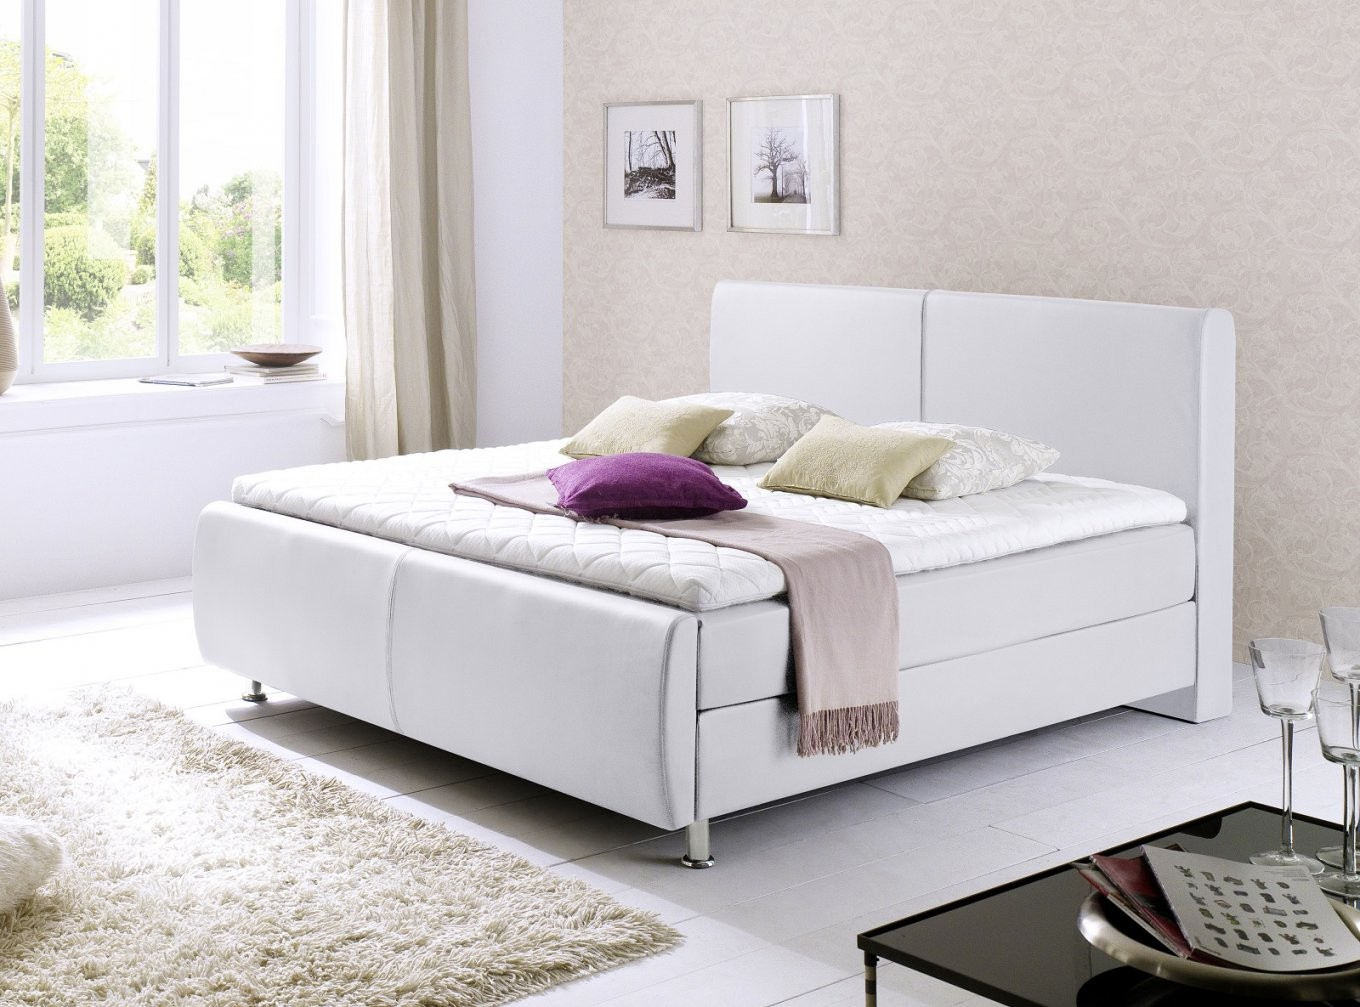 Boxspringbett Amondo Amadeo Braun  160Cm X 200Cm von Boxspring Bett Weiß 160X200 Photo